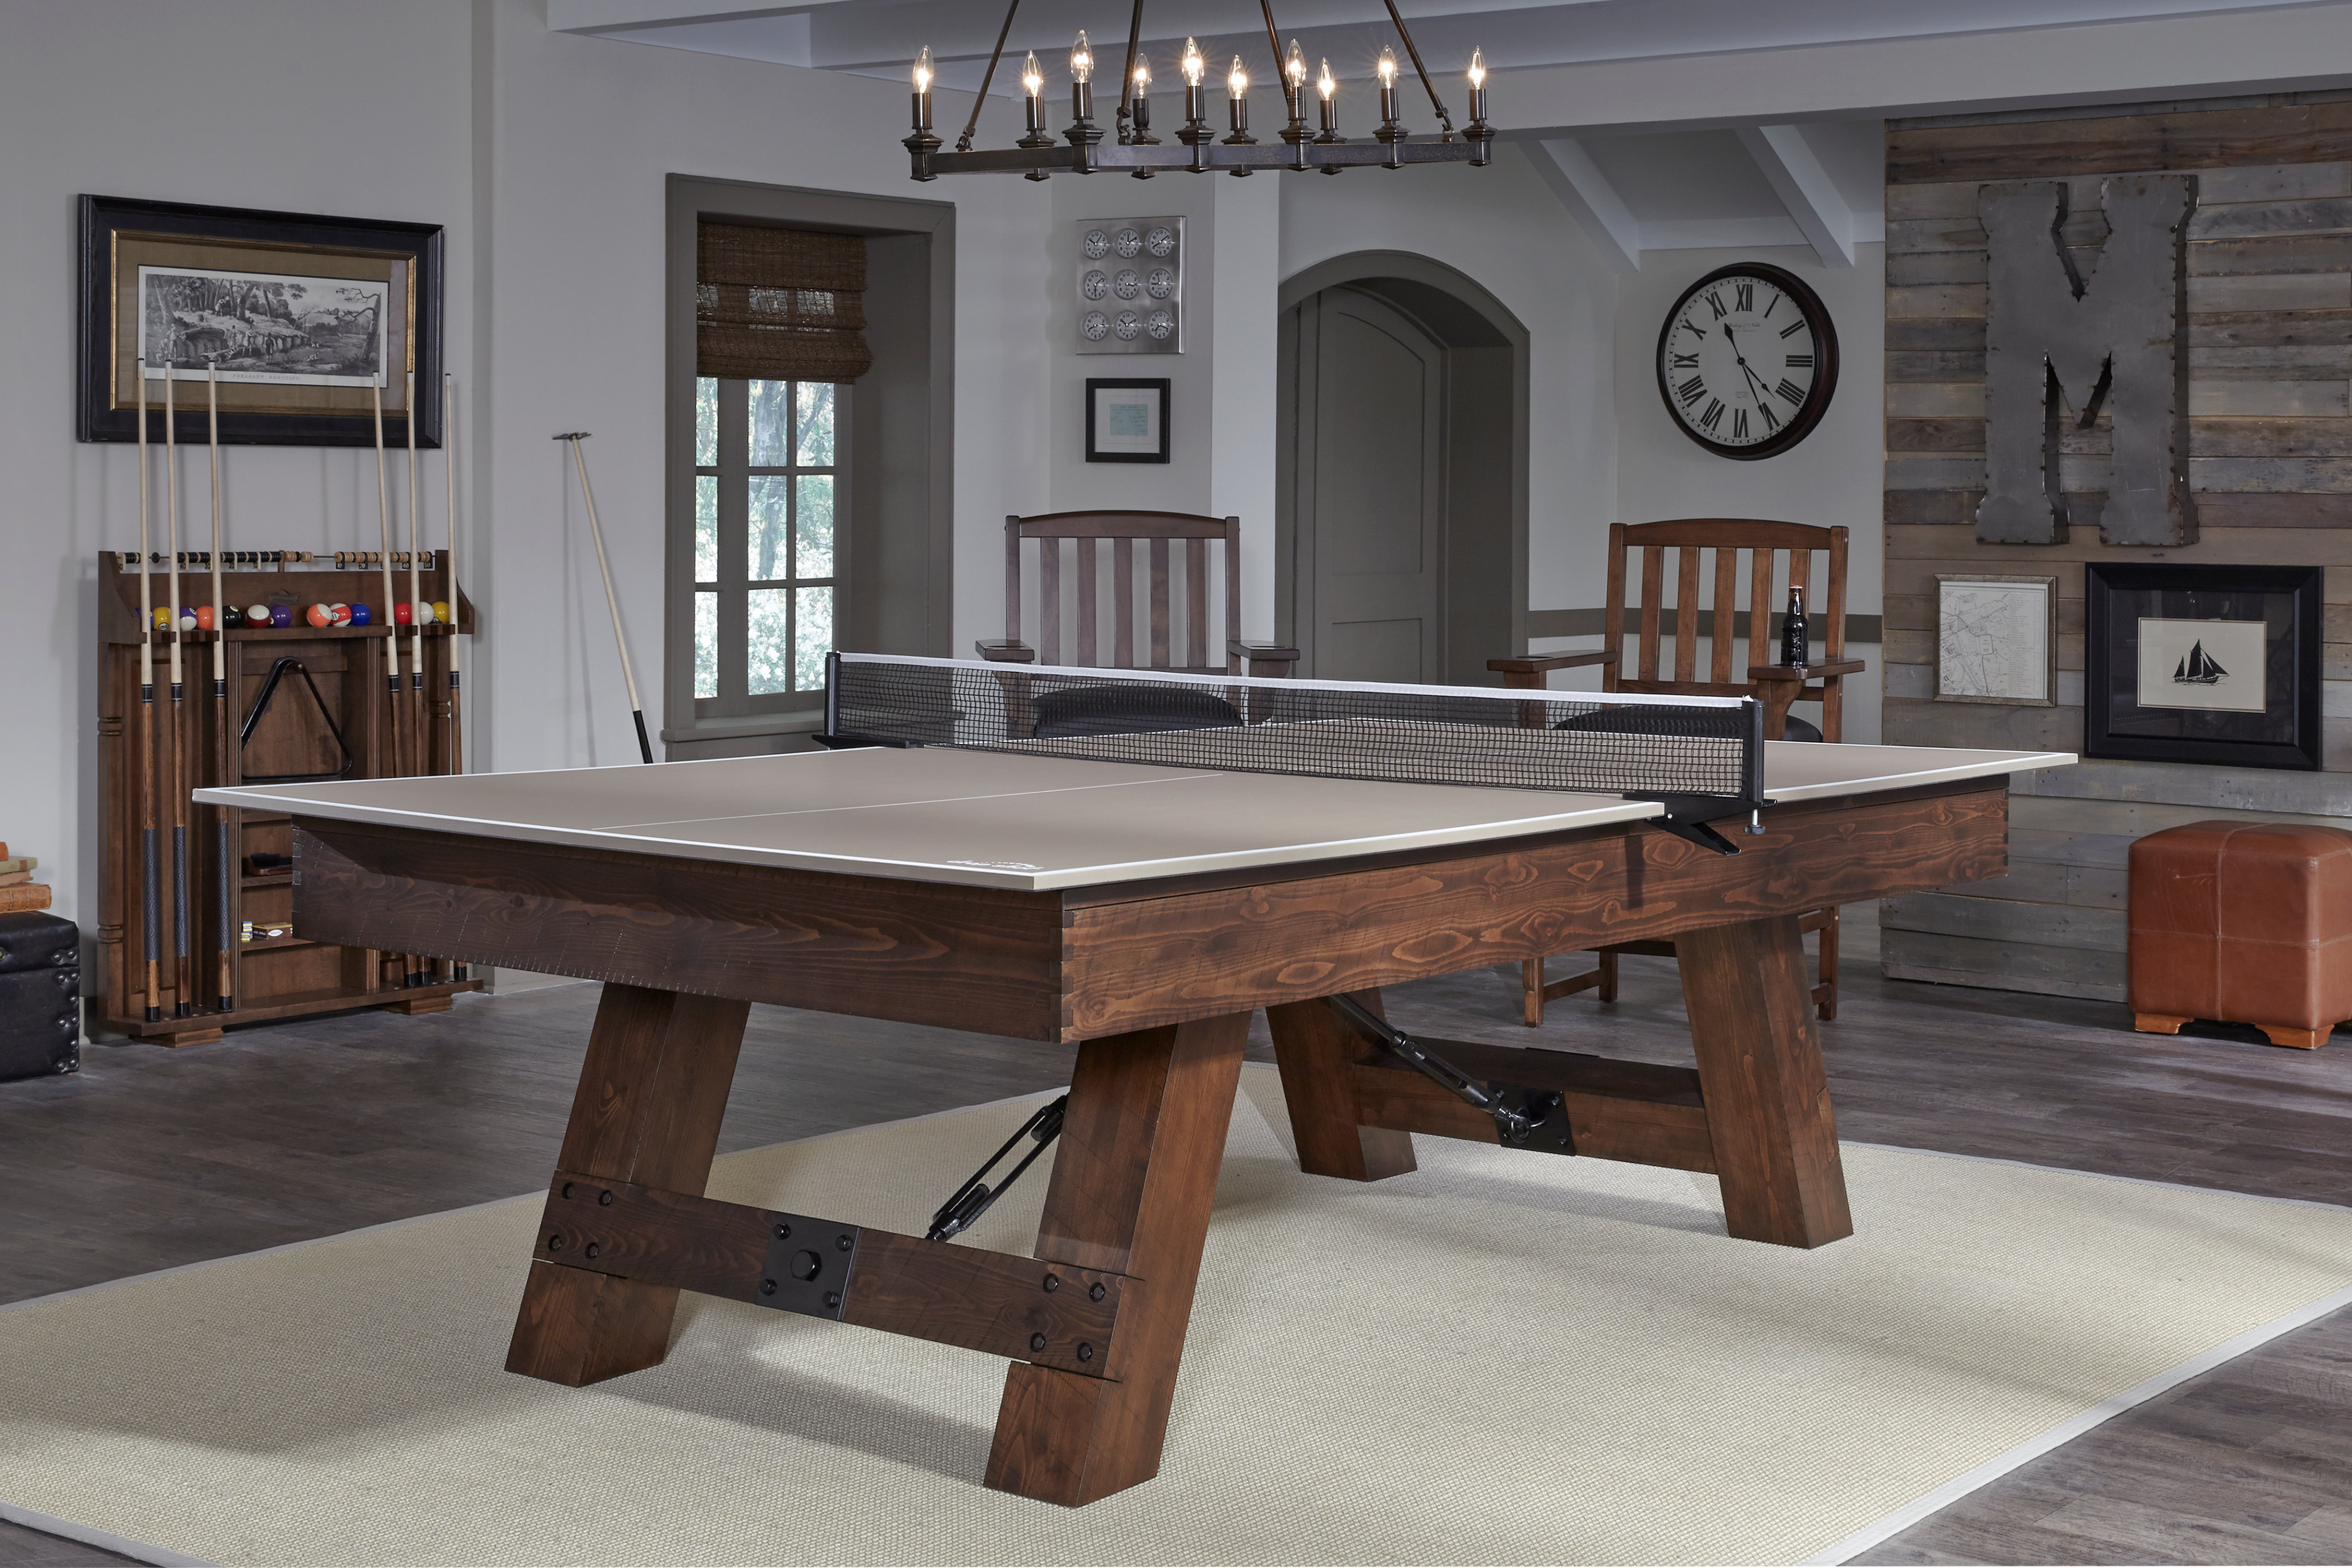 Table Tennis Conversion Top In Tan